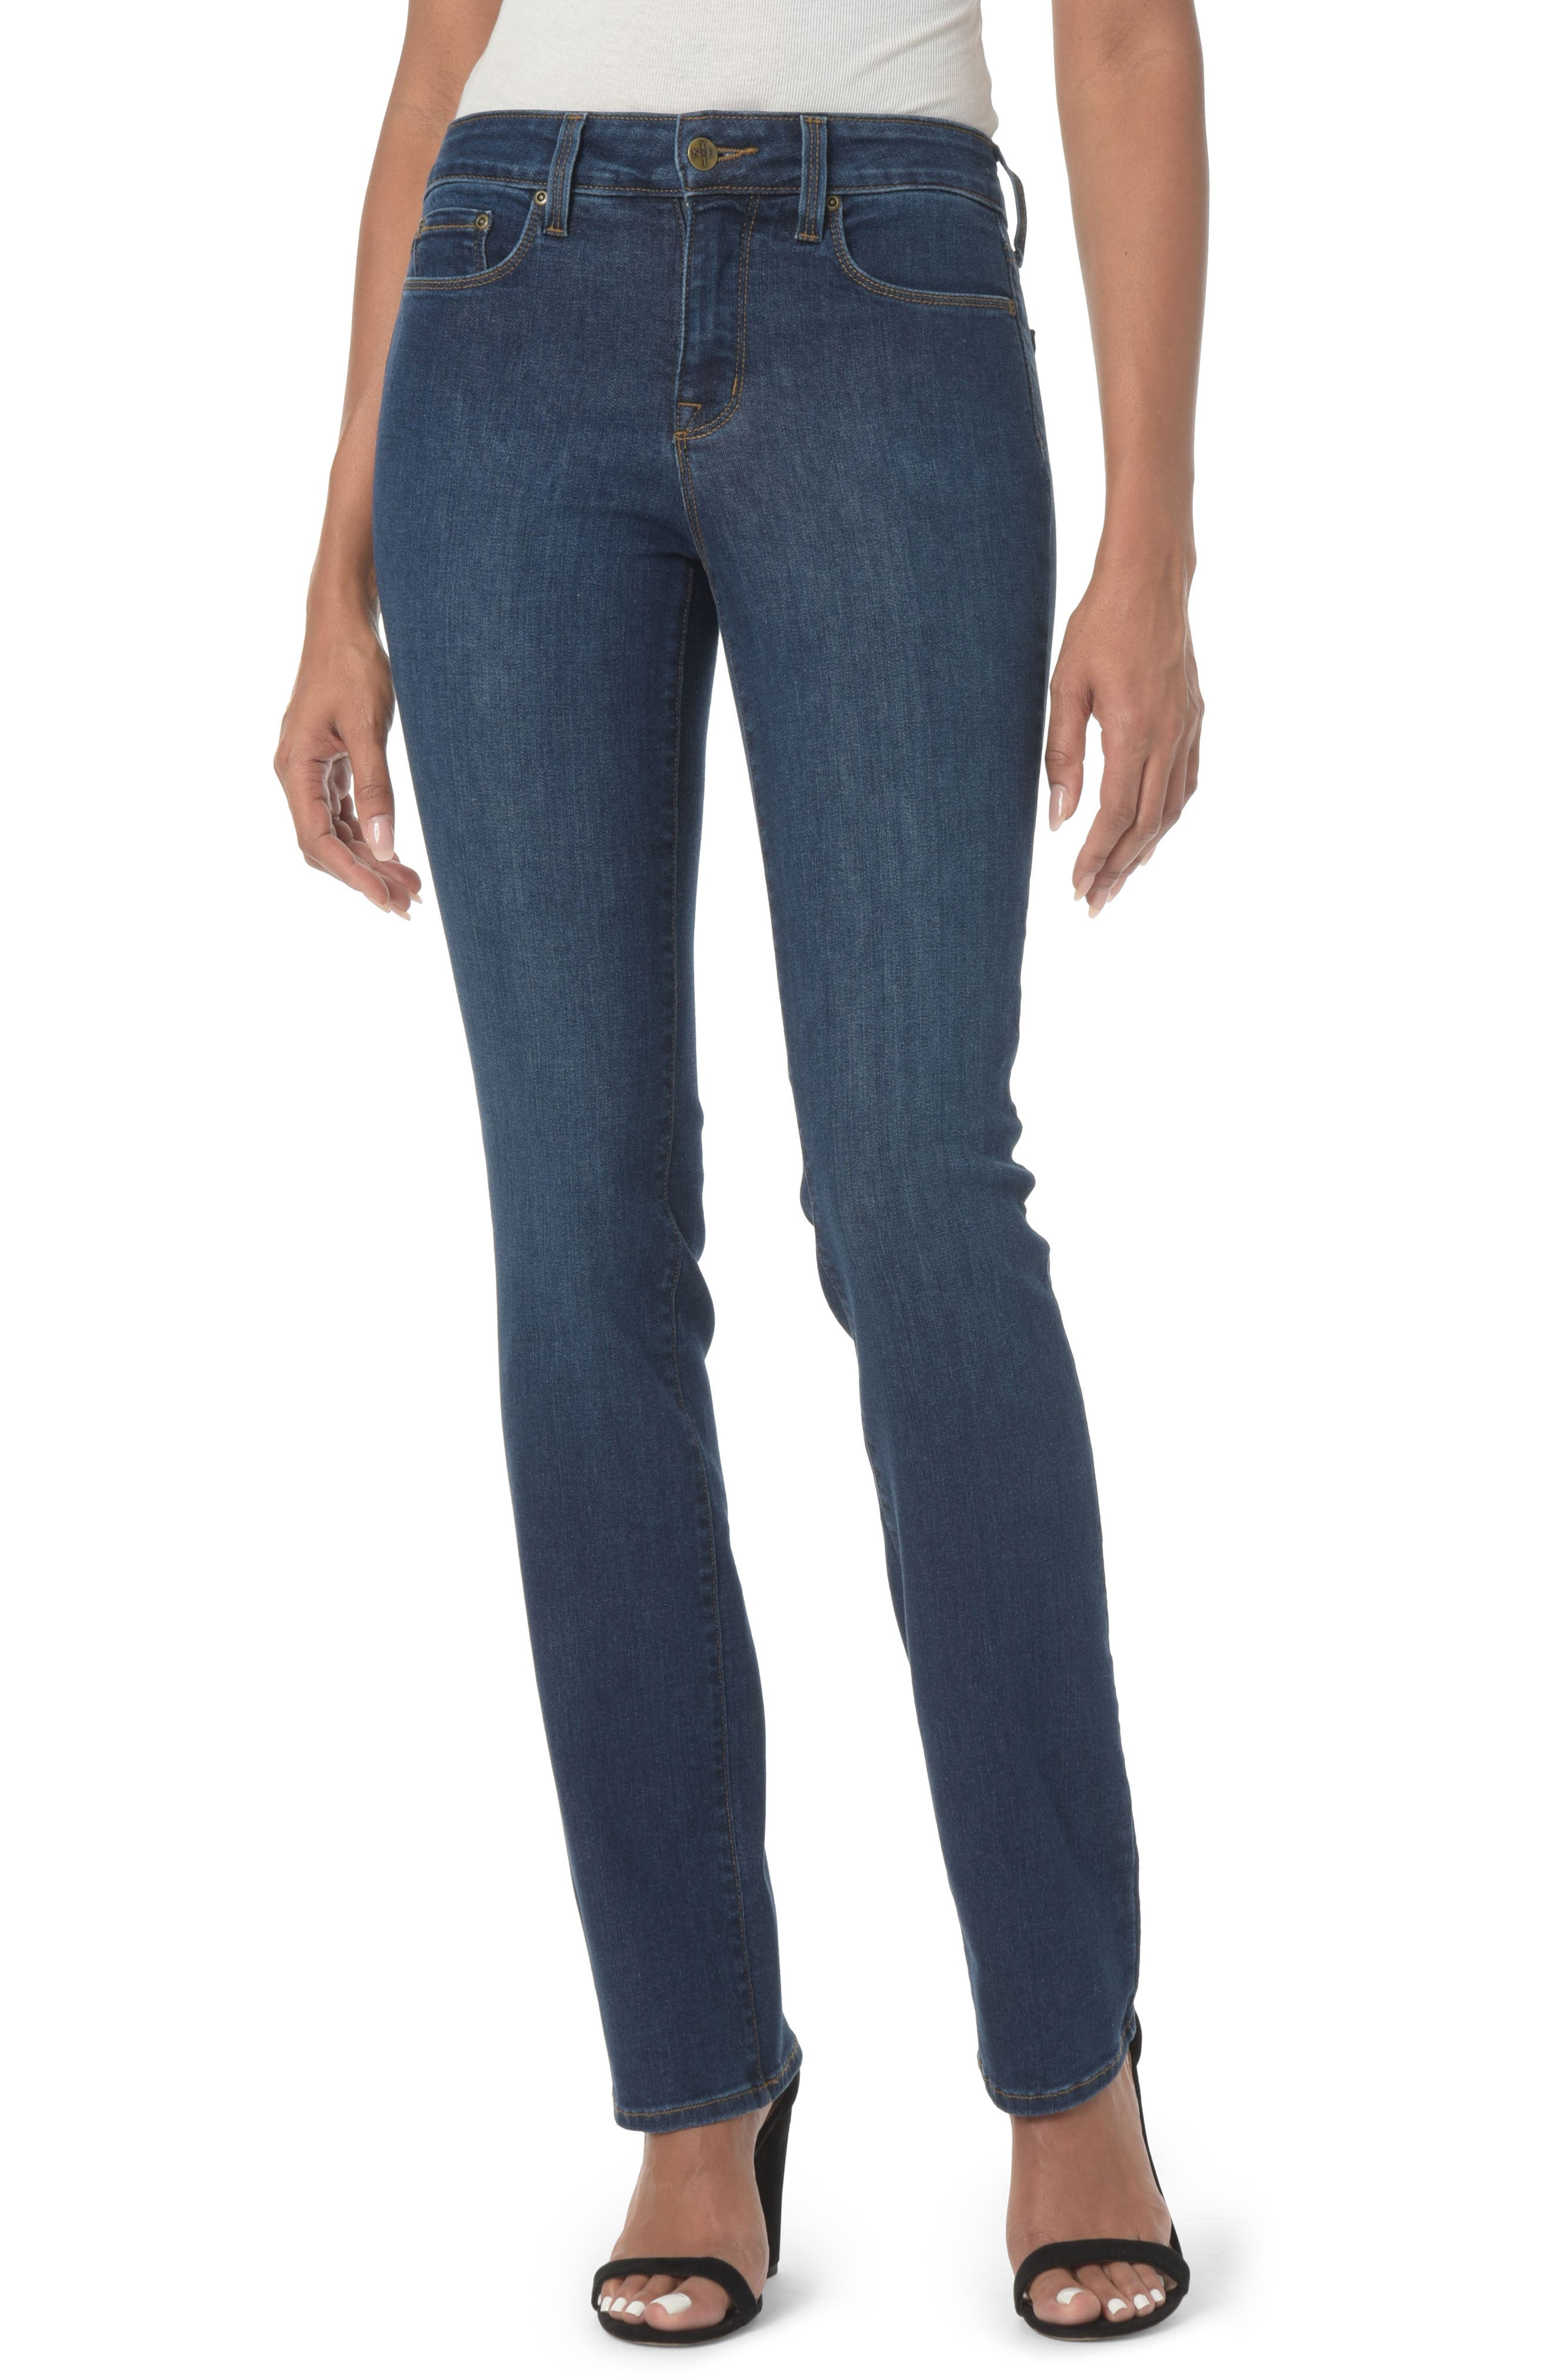 NYDJ Marilyn Stretch Straight Leg Jeans (Cooper) (Regular & Petite)